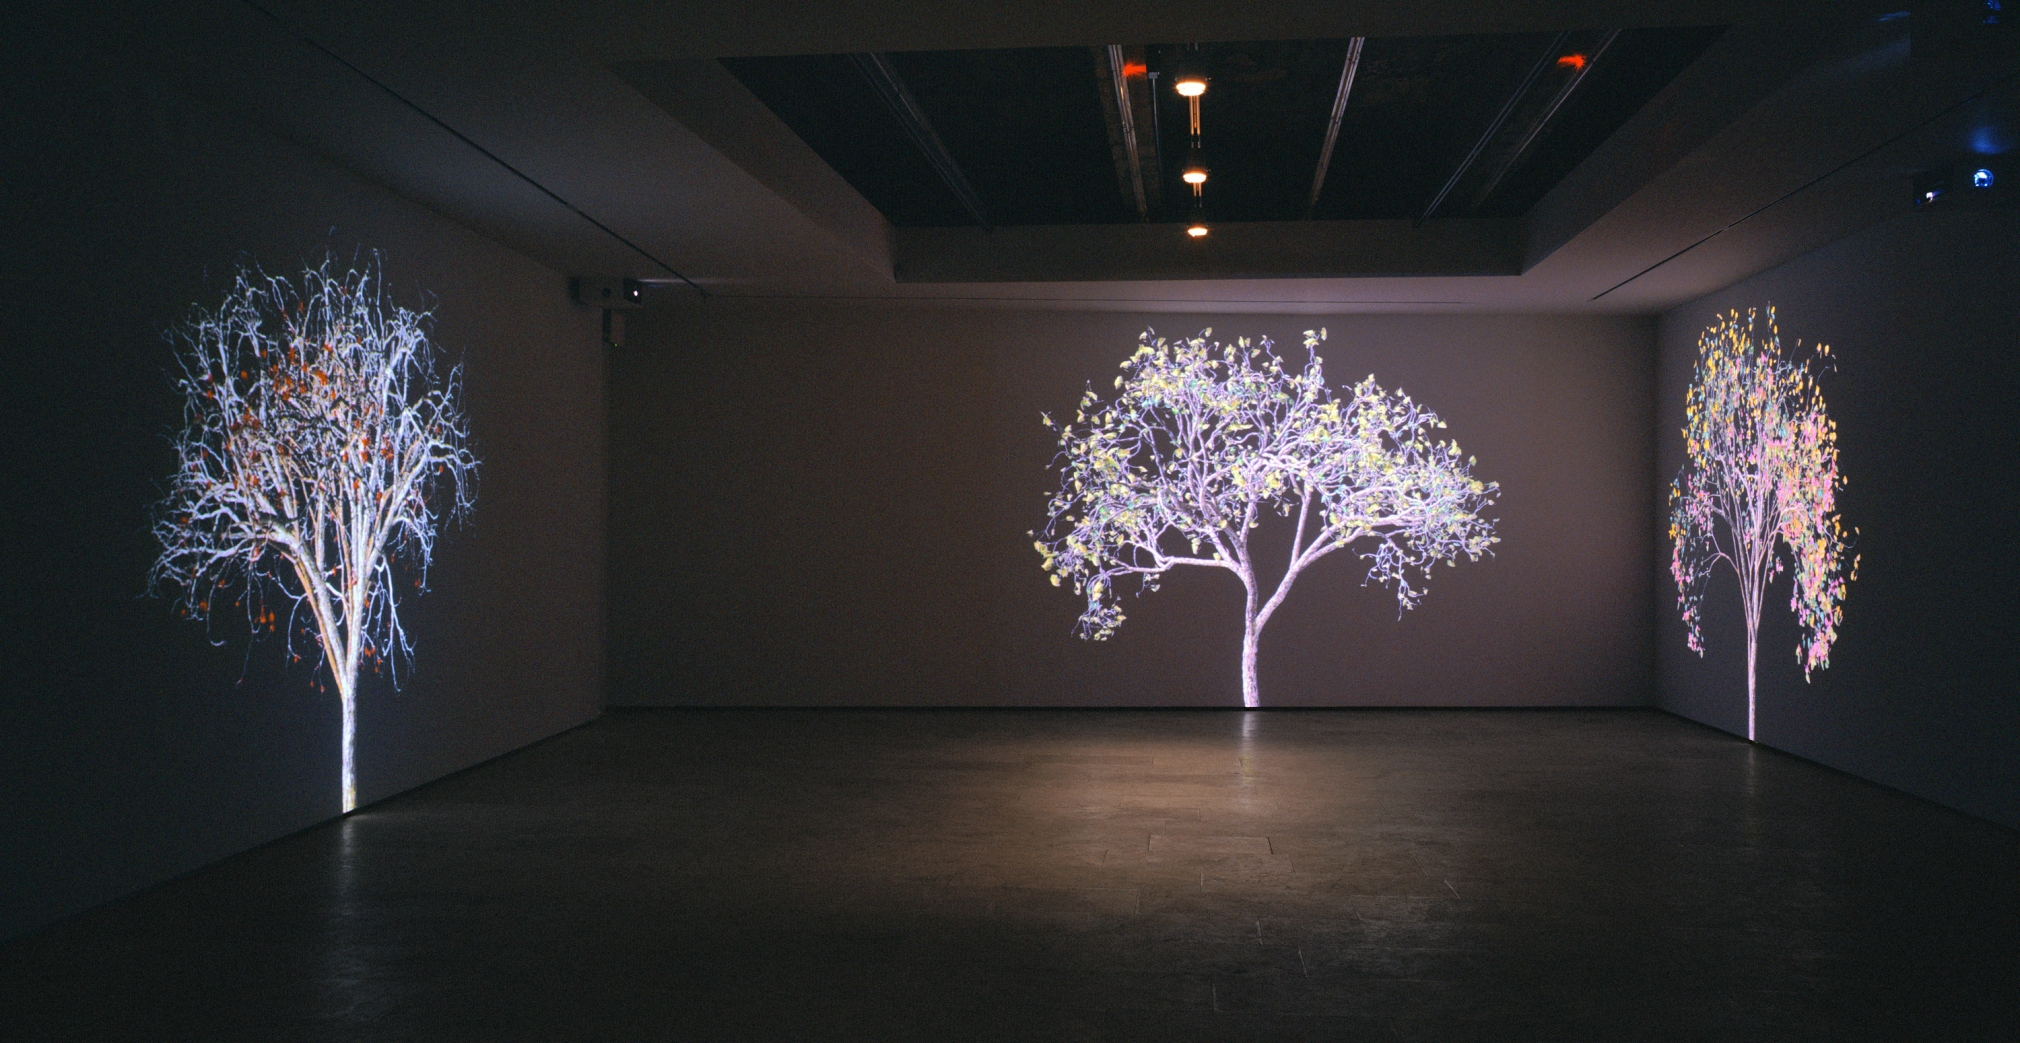 Jennifer Steinkamp: Digital Nature, Installation view, Telefónica Foundation Space, Madrid, Spain